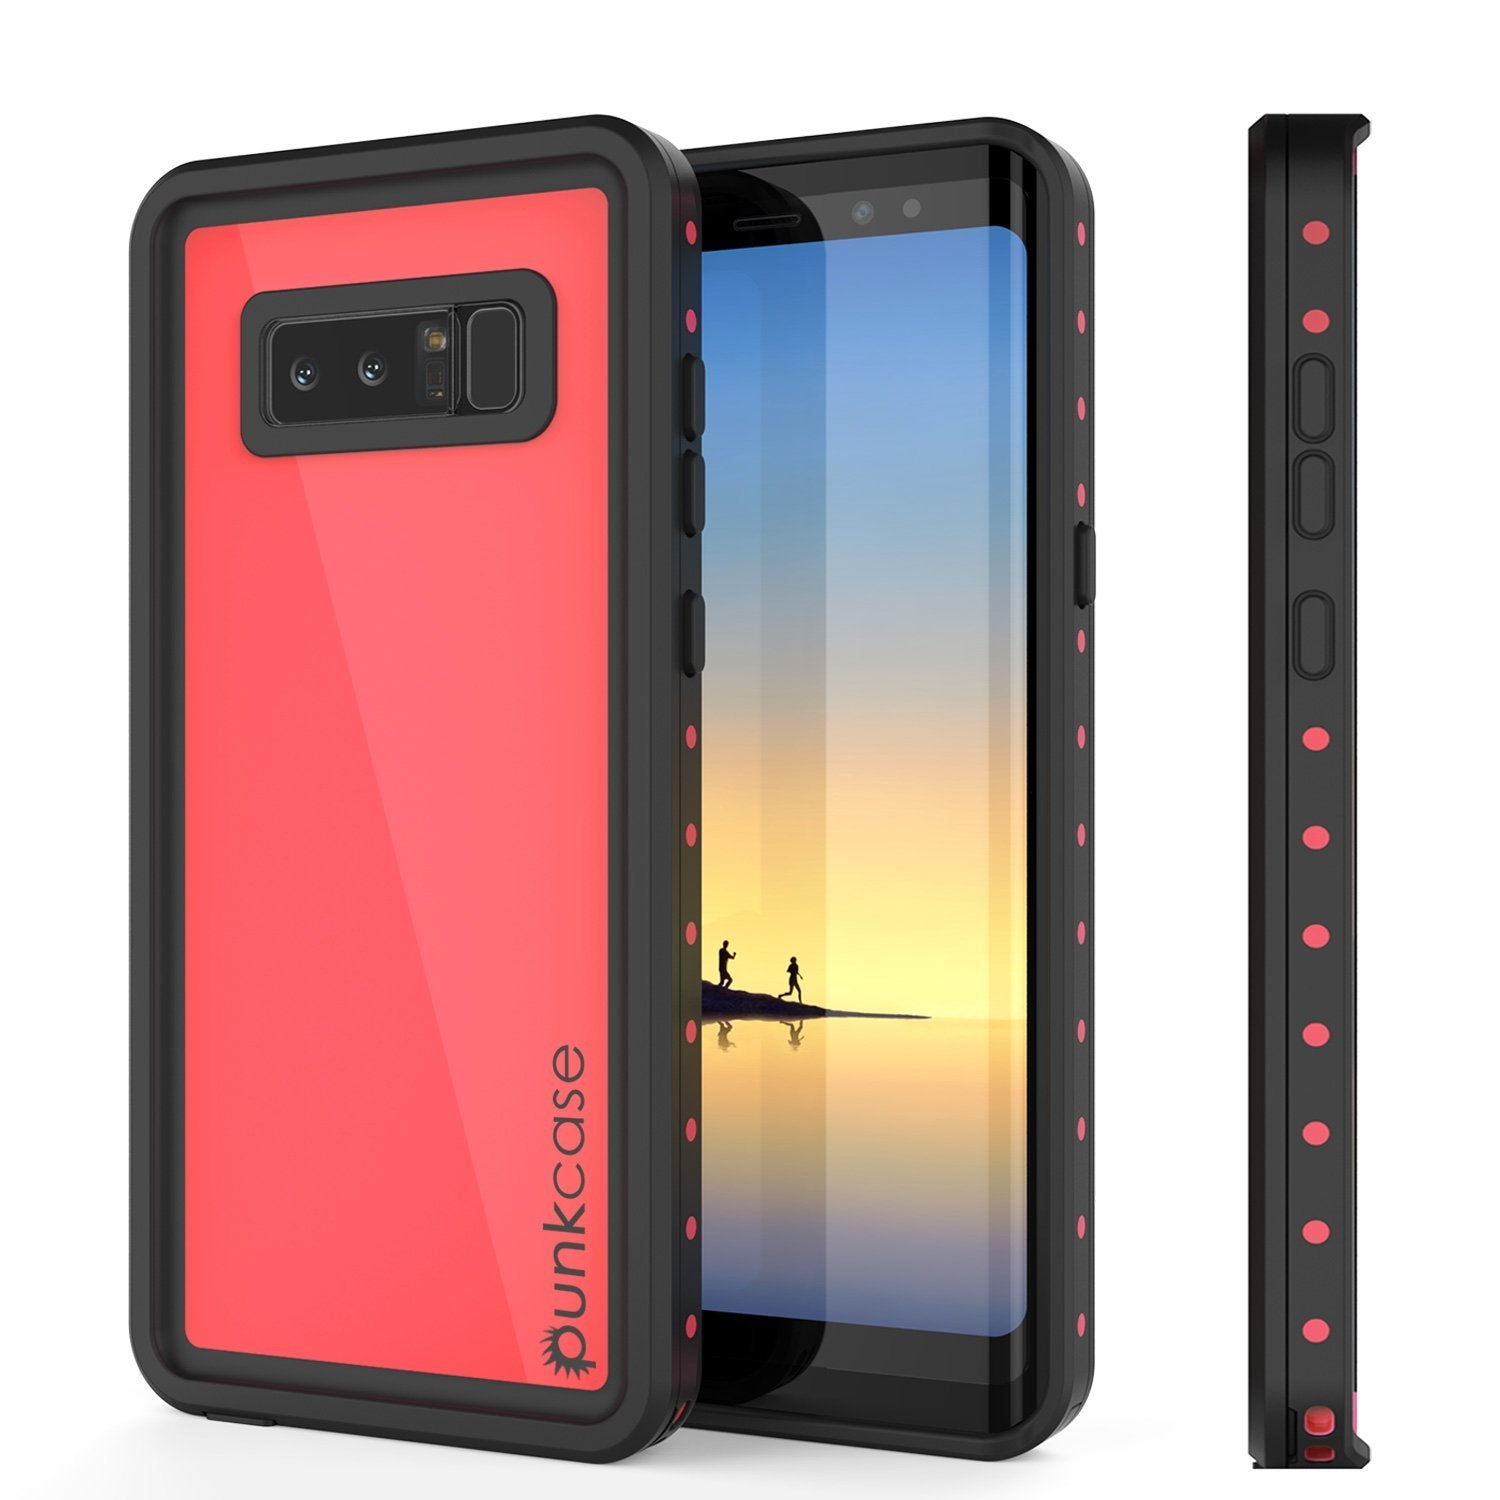 Galaxy Note 8 Punkcase Waterproof IP68 Shock/Snow Proof Case [Pink]